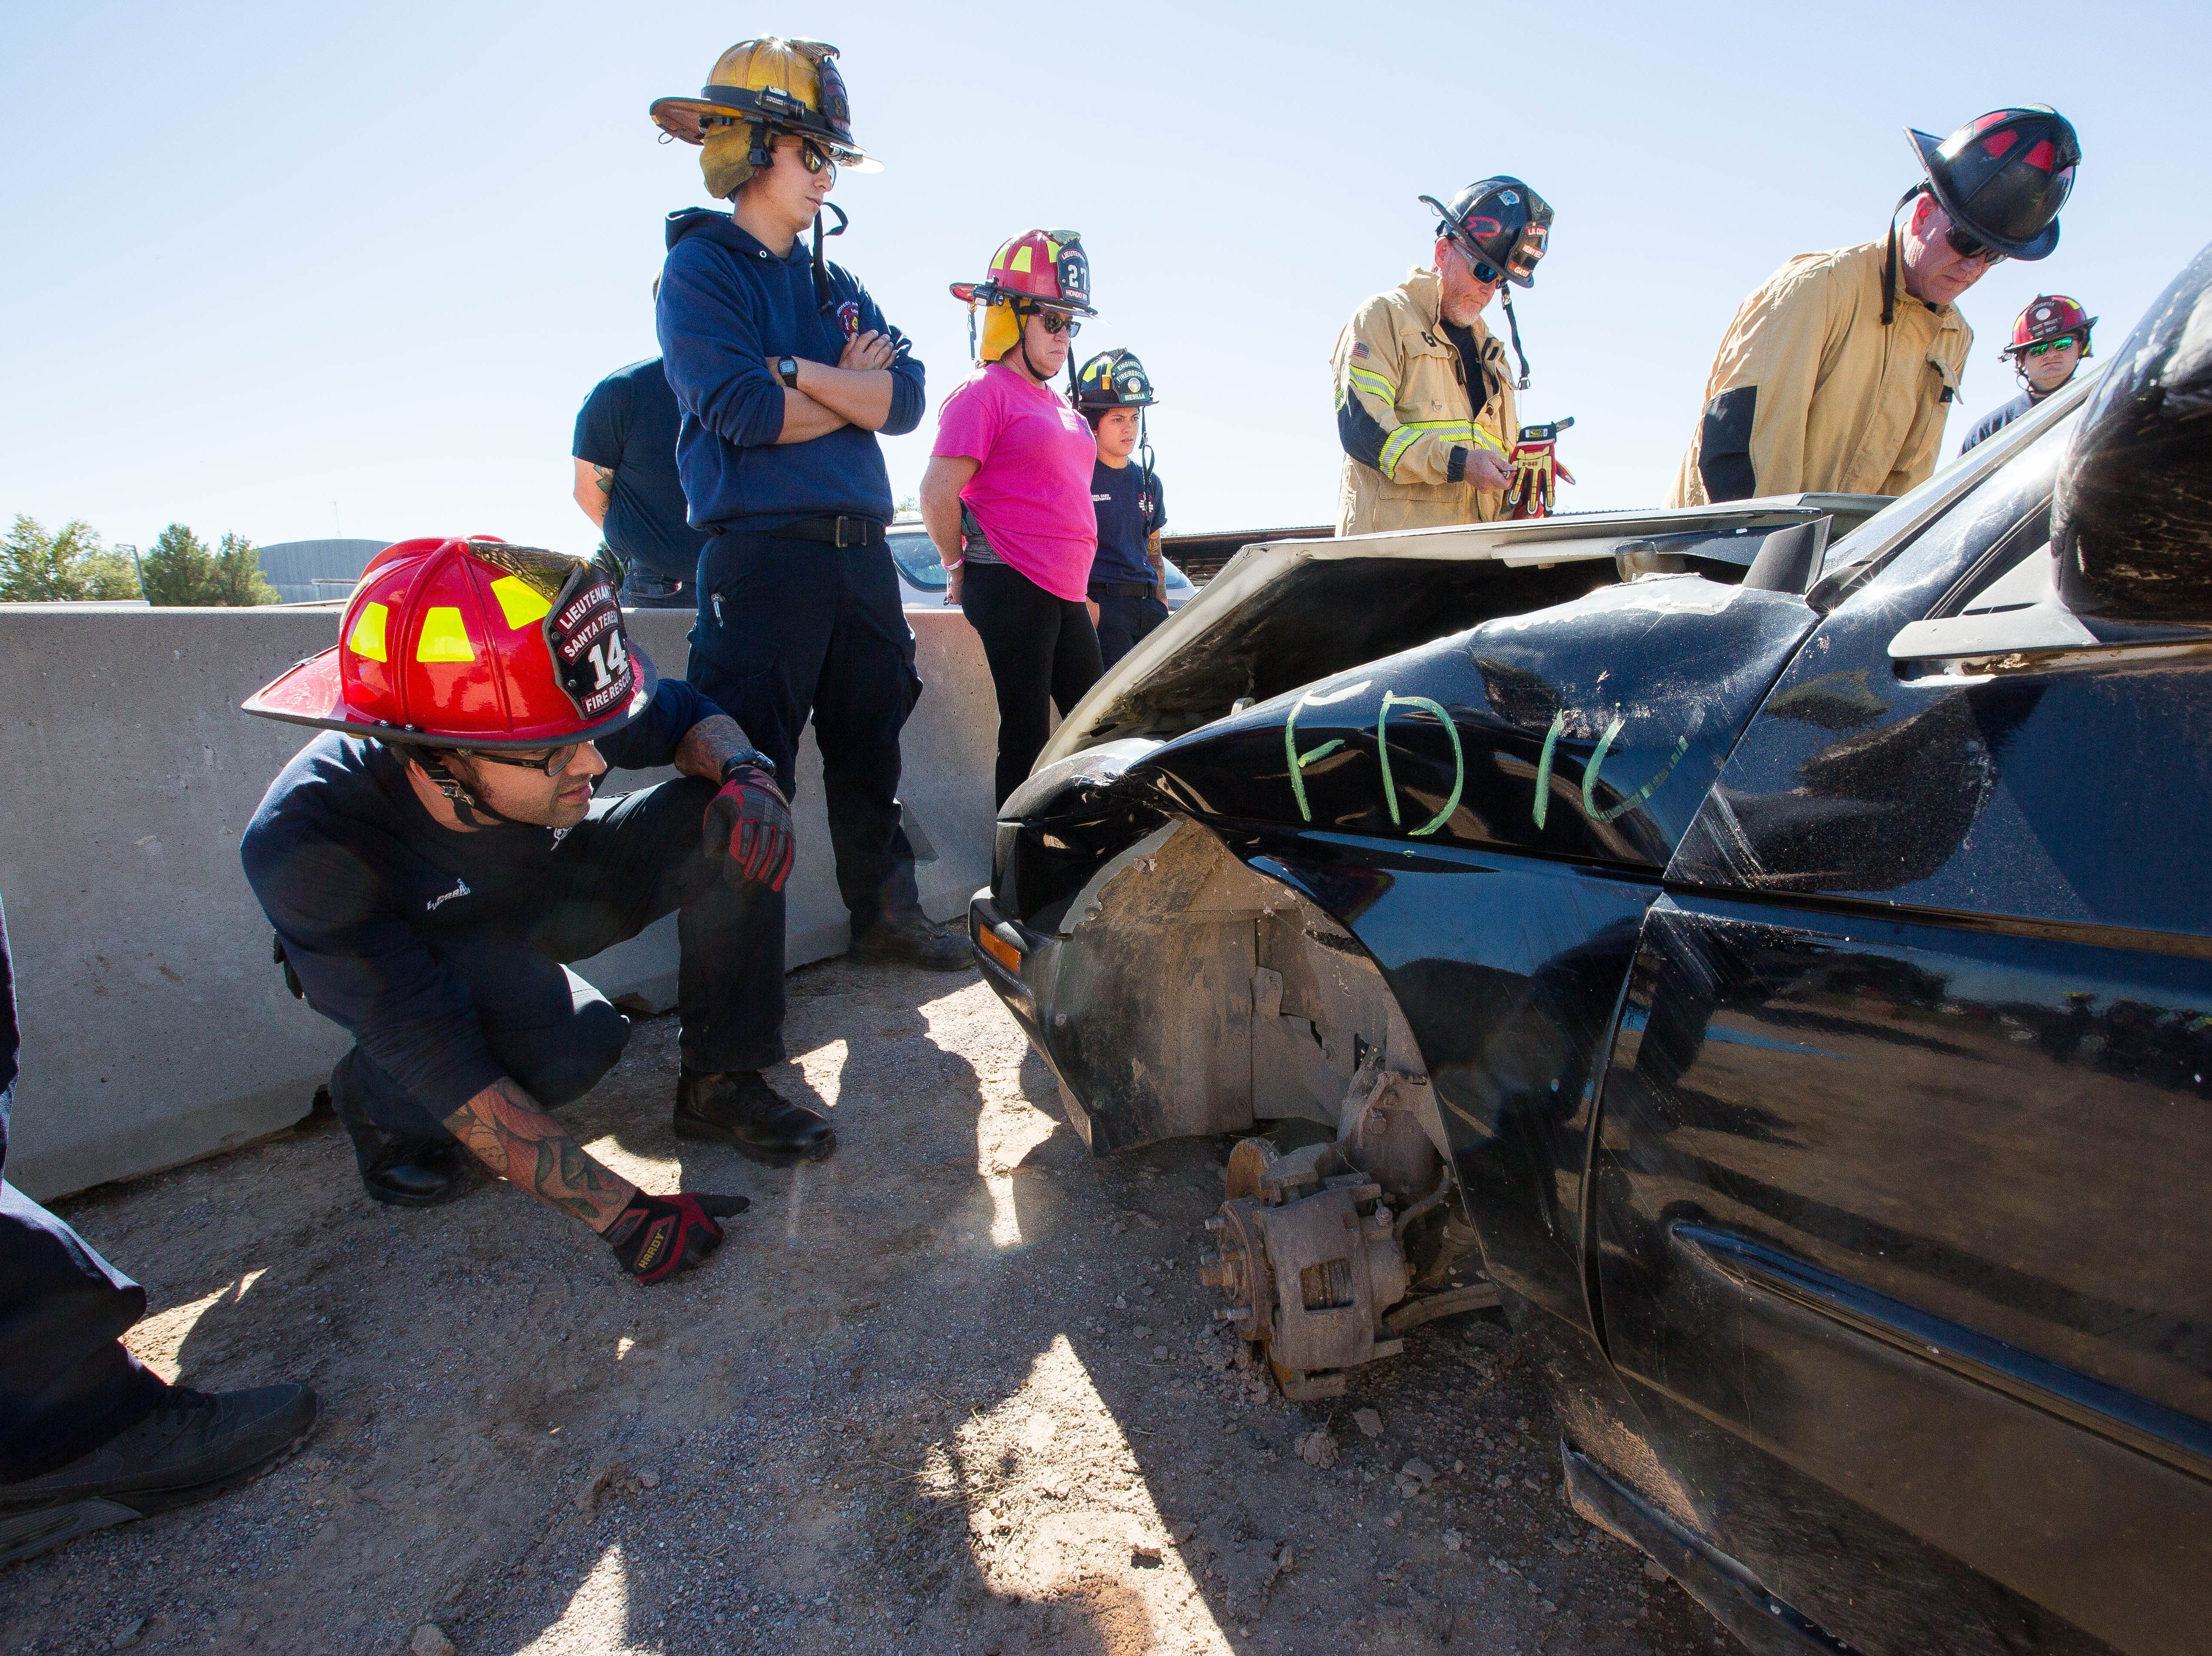 Eric Porras, lieutenant with the Santa Teresa Fire Department, watches as instructors from Curtis Tools for Heros and Hurst Jaws of Life, show firefighters basic technique for extraction tactics, Friday October 26, 2018. This demonstration is part of a three-day advanced auto extraction class, providing first responders with training different types of vehicles and accidents they will encounter while on the job.